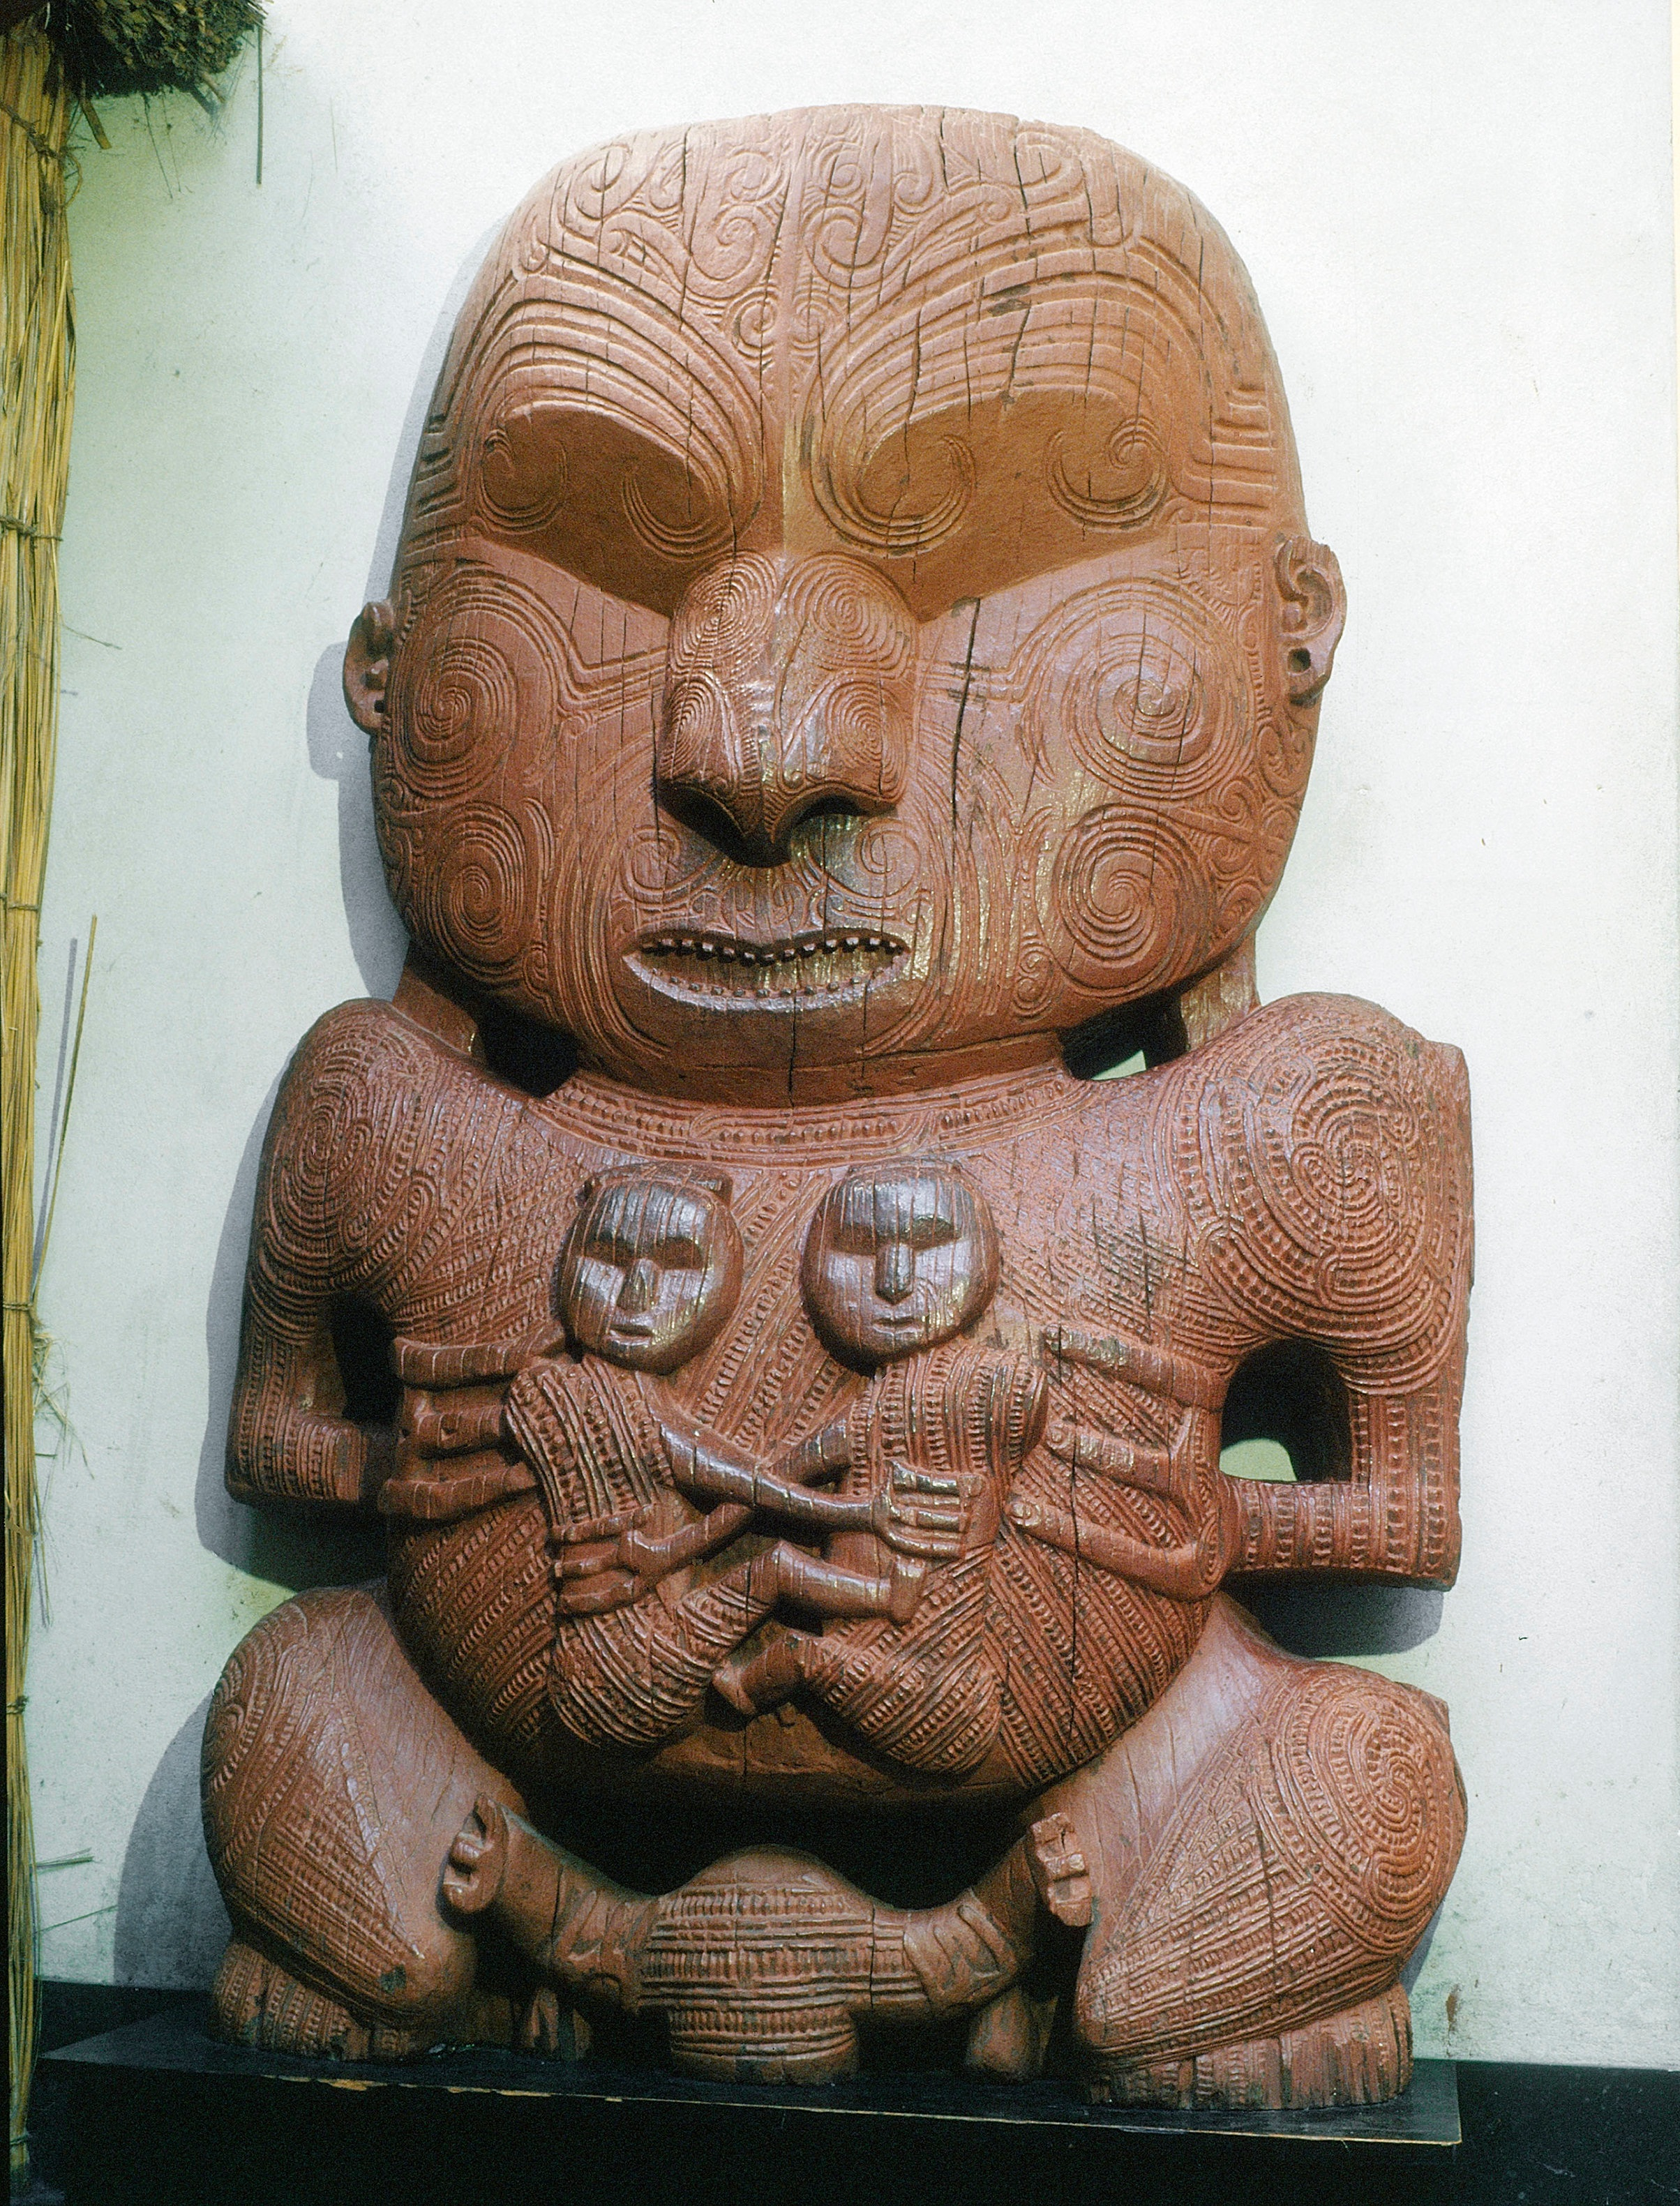 Figure from a village gateway or stockade (pa) at Te Ngae. It represents a chief of the Ngati Whakaue tribe named Pukaki, with his two sons. His facial and body tattoos are in the spiral style typical of the Arawa peoples, Lake Rotorua.   Early 19th century   Inv. #: 55404974 © Werner Forman Archive/ Auckland Institute and Museum, Auckland